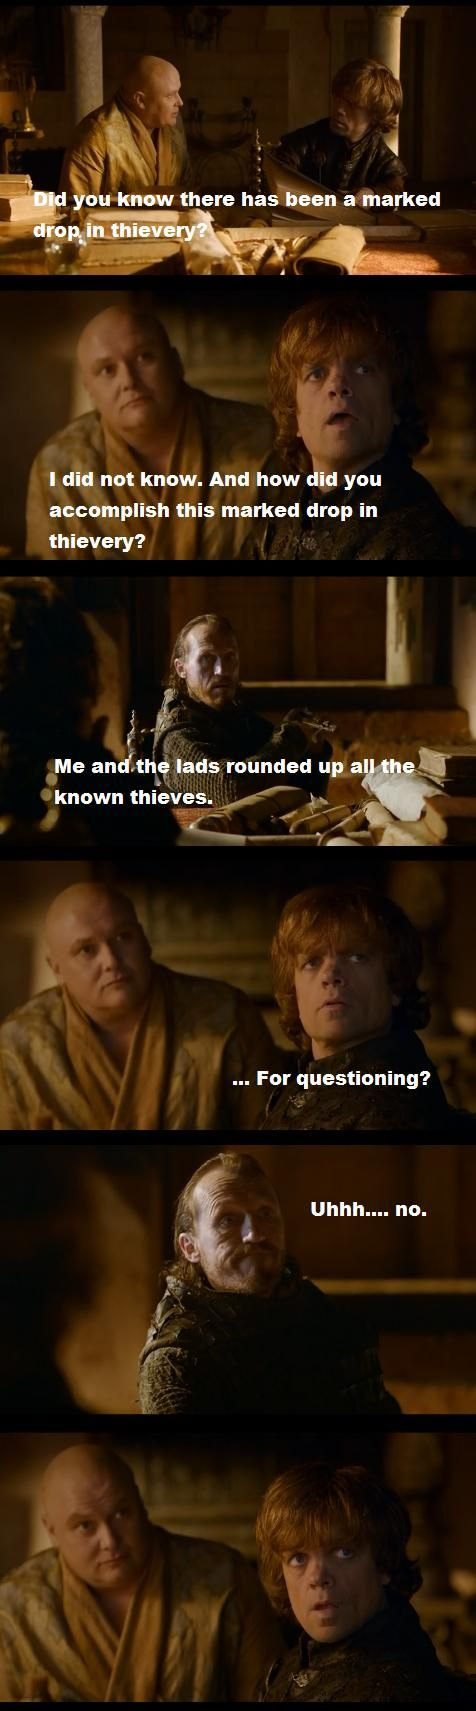 Lord Varys, Tyrion Lannister, & Bronn. These three together are some of my favorite moments.